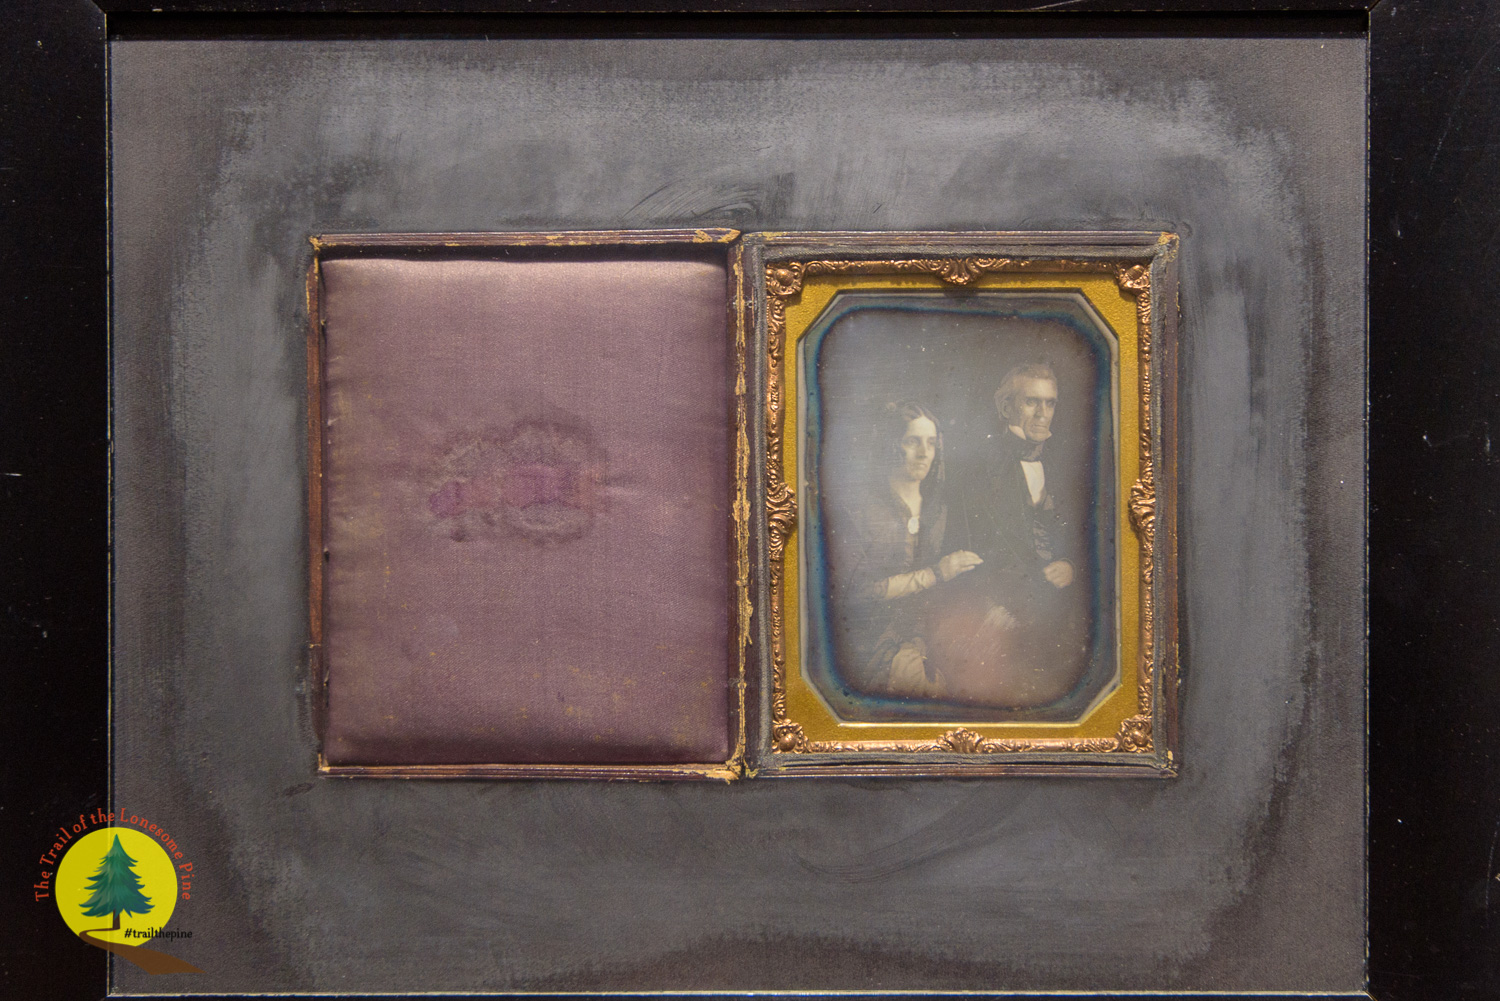 Original daguerreotype of James Polk and his wife, Sarah